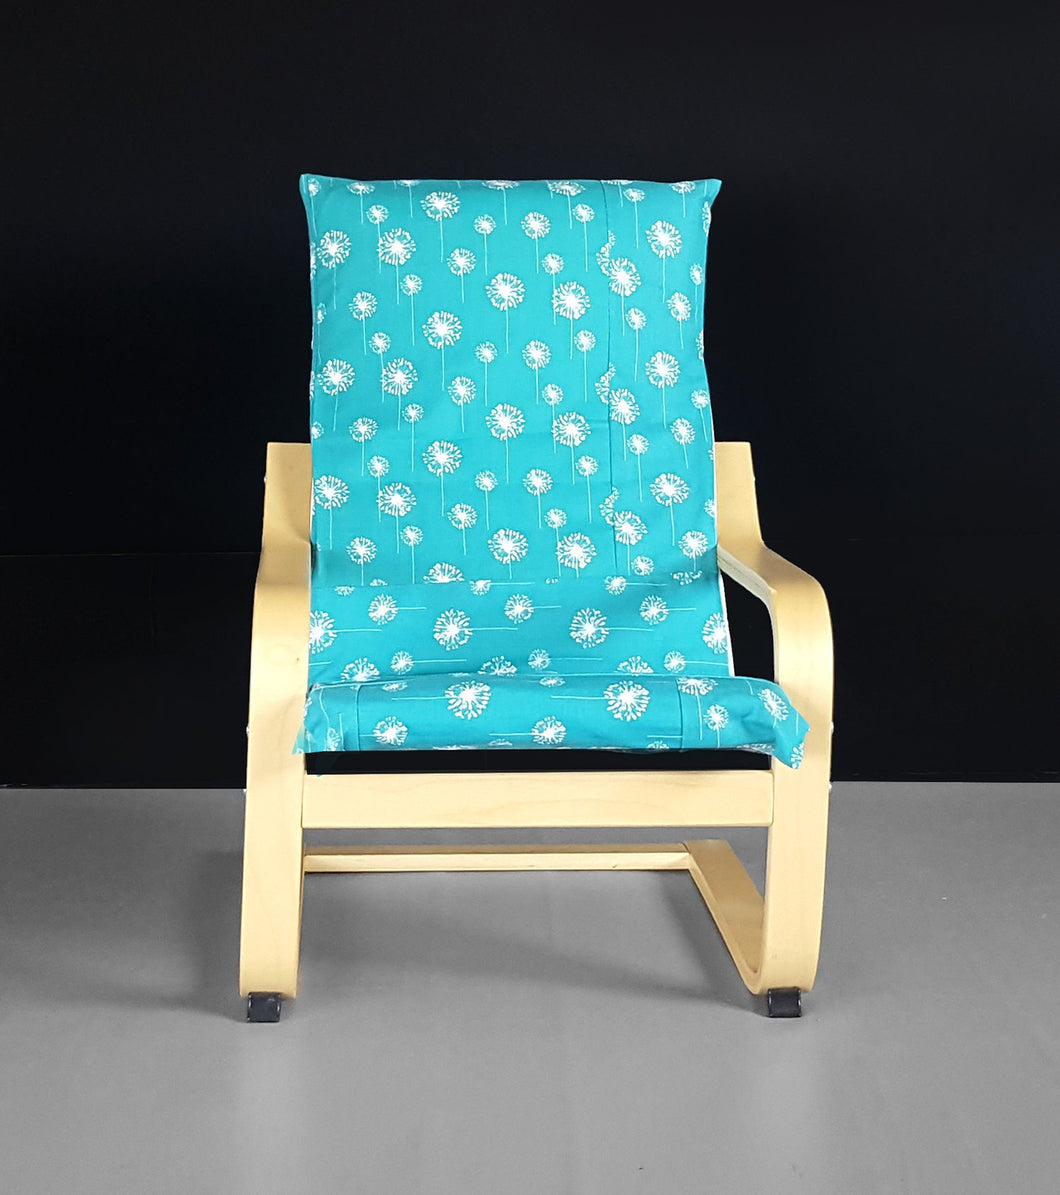 Patchwork Turquoise Dandelion IKEA Childrens POÄNG Cushion Slipcover, Ready to Ship